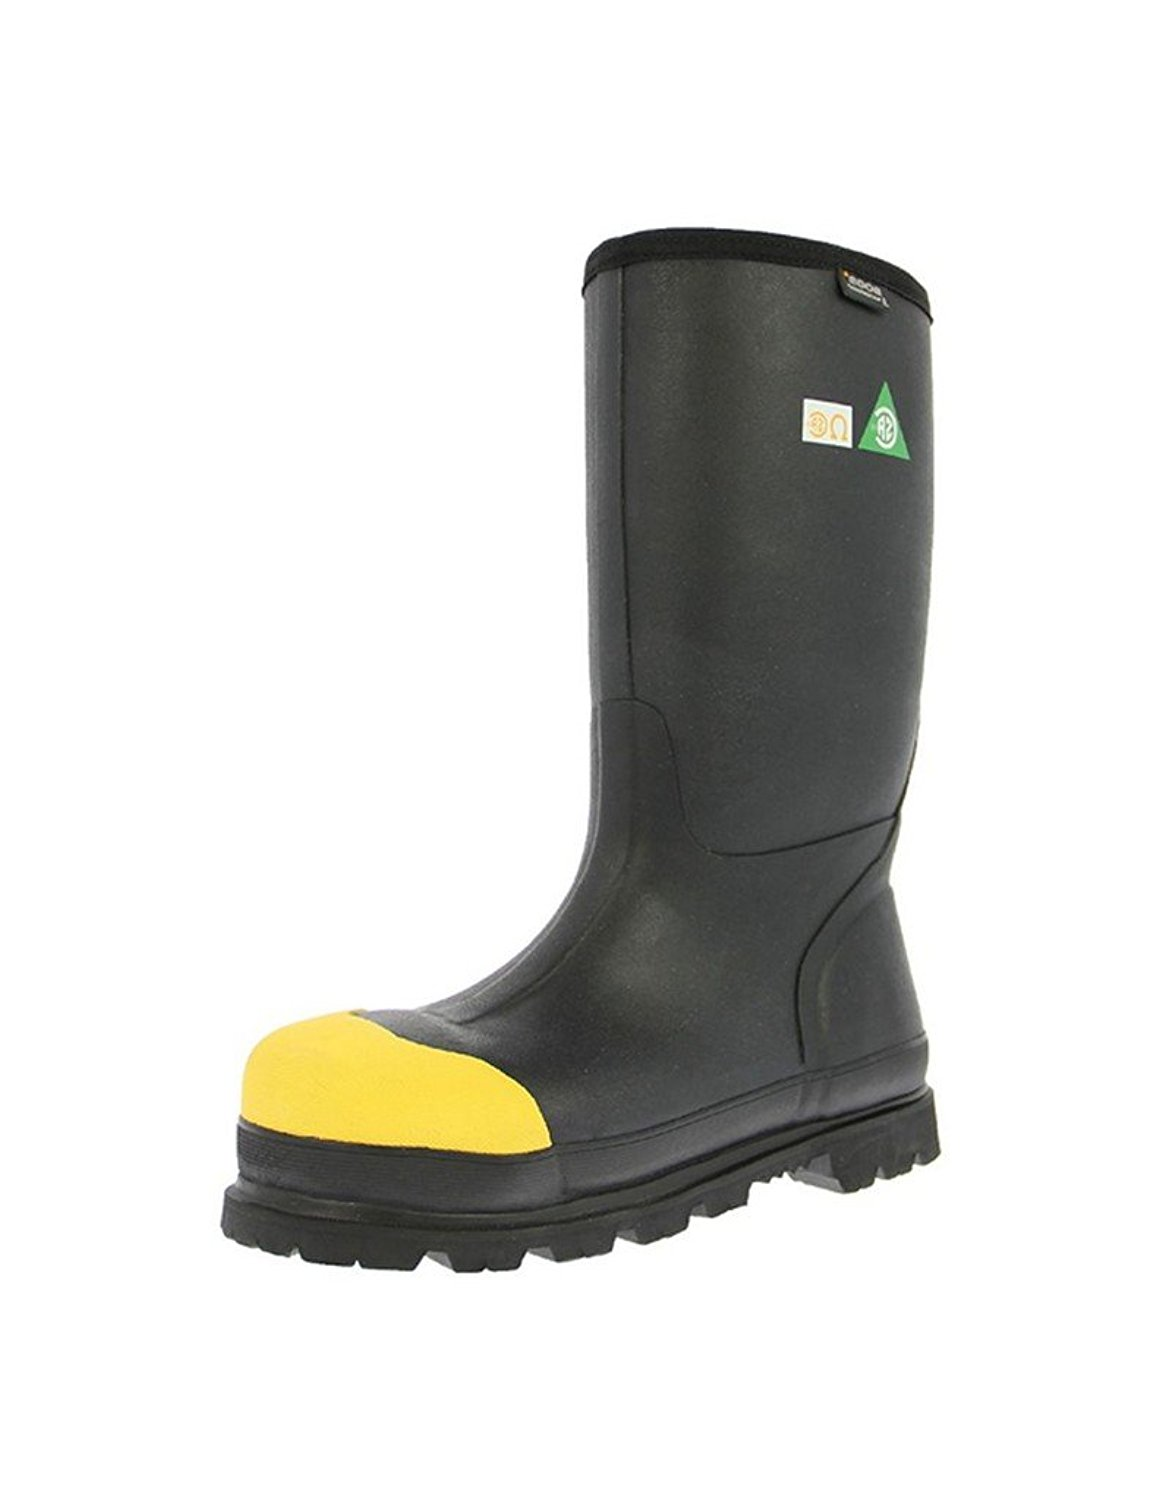 Cheap mens wide rubber boots, find mens